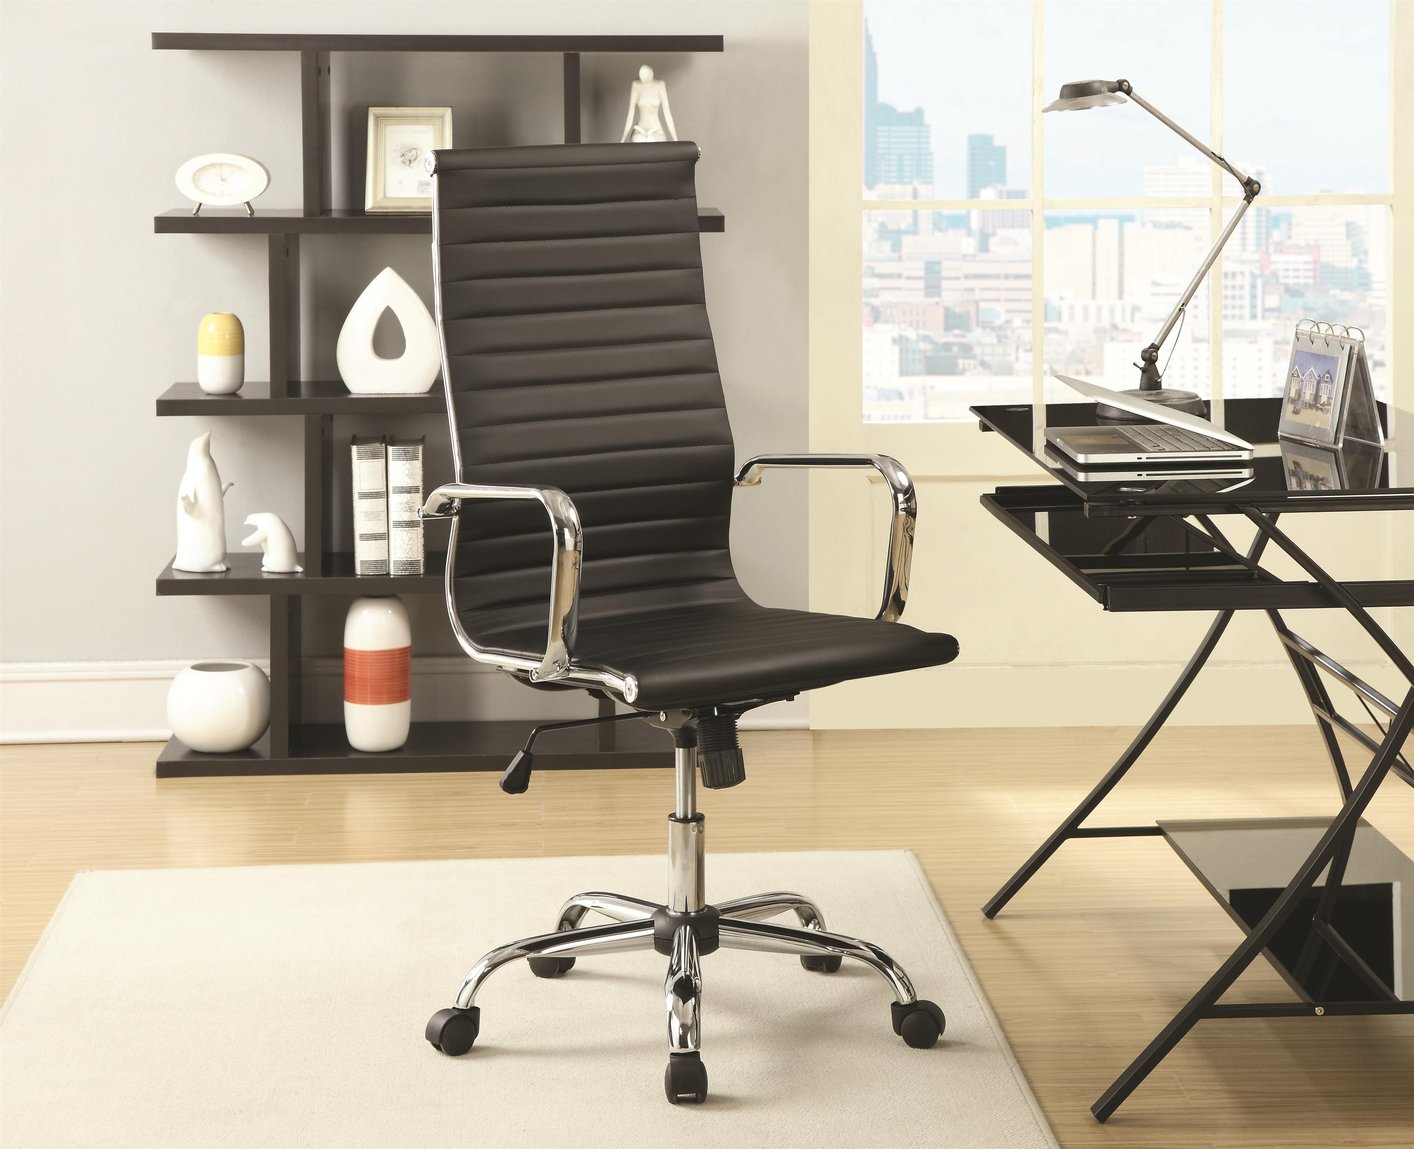 las vegas office chairs chair armless tony black furniture store